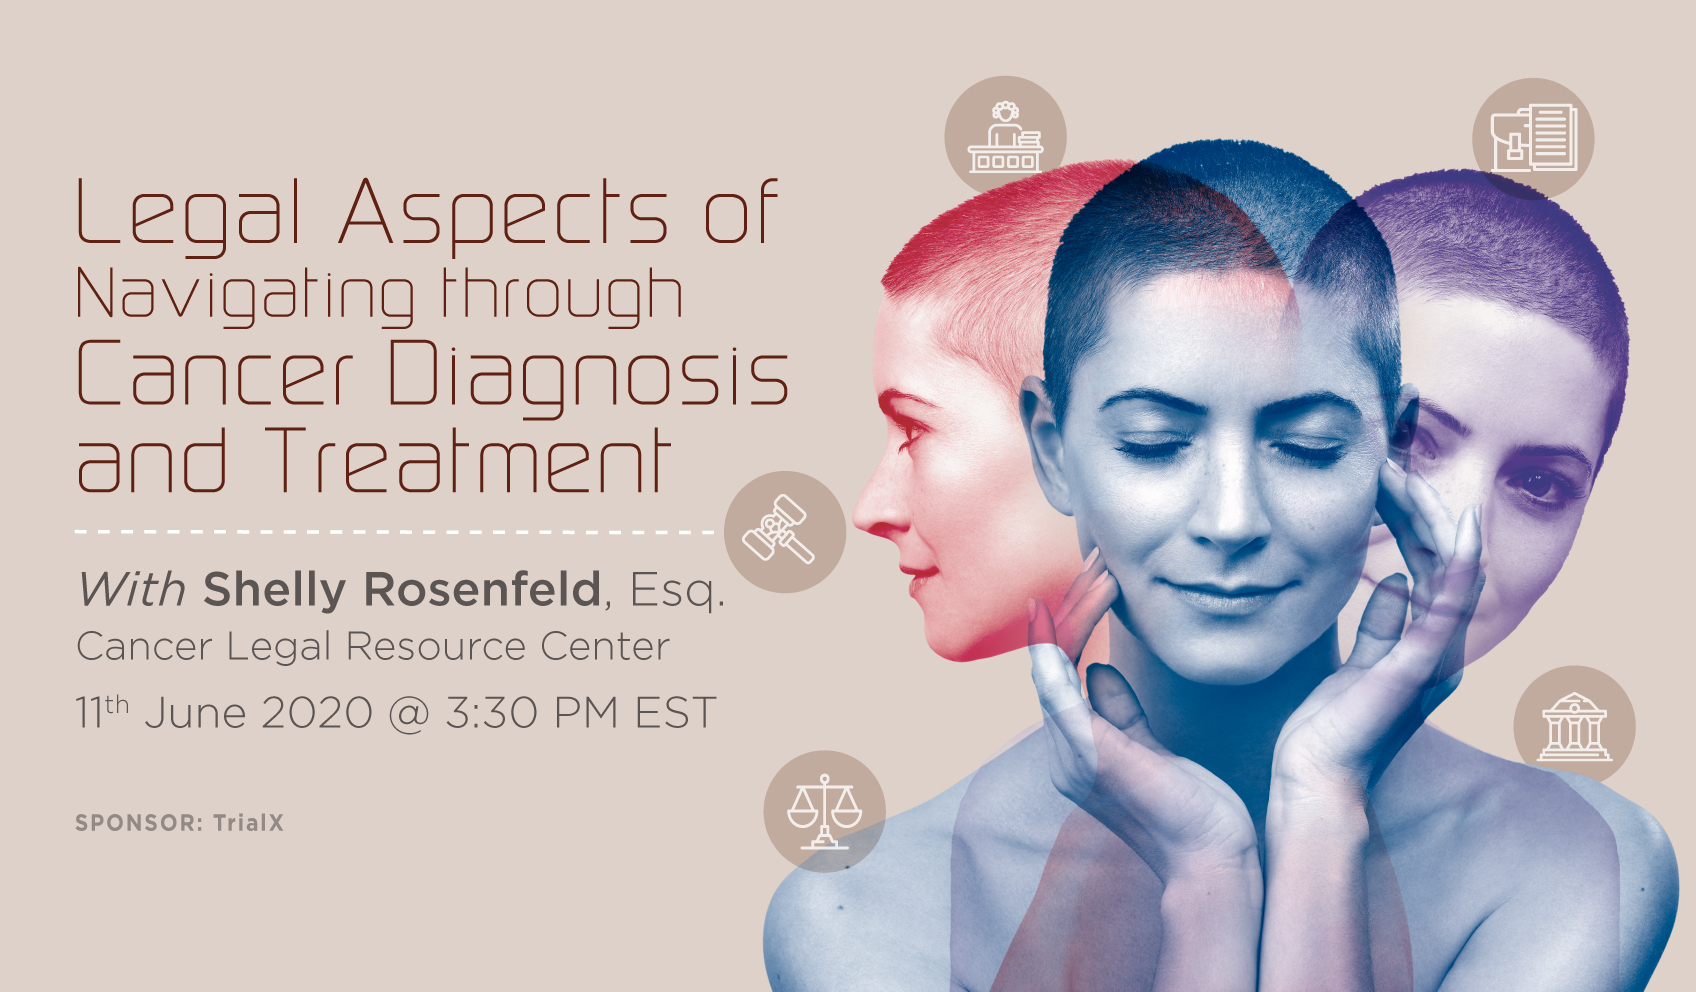 Legal Aspects of Navigating through Cancer Diagnosis and Treatment